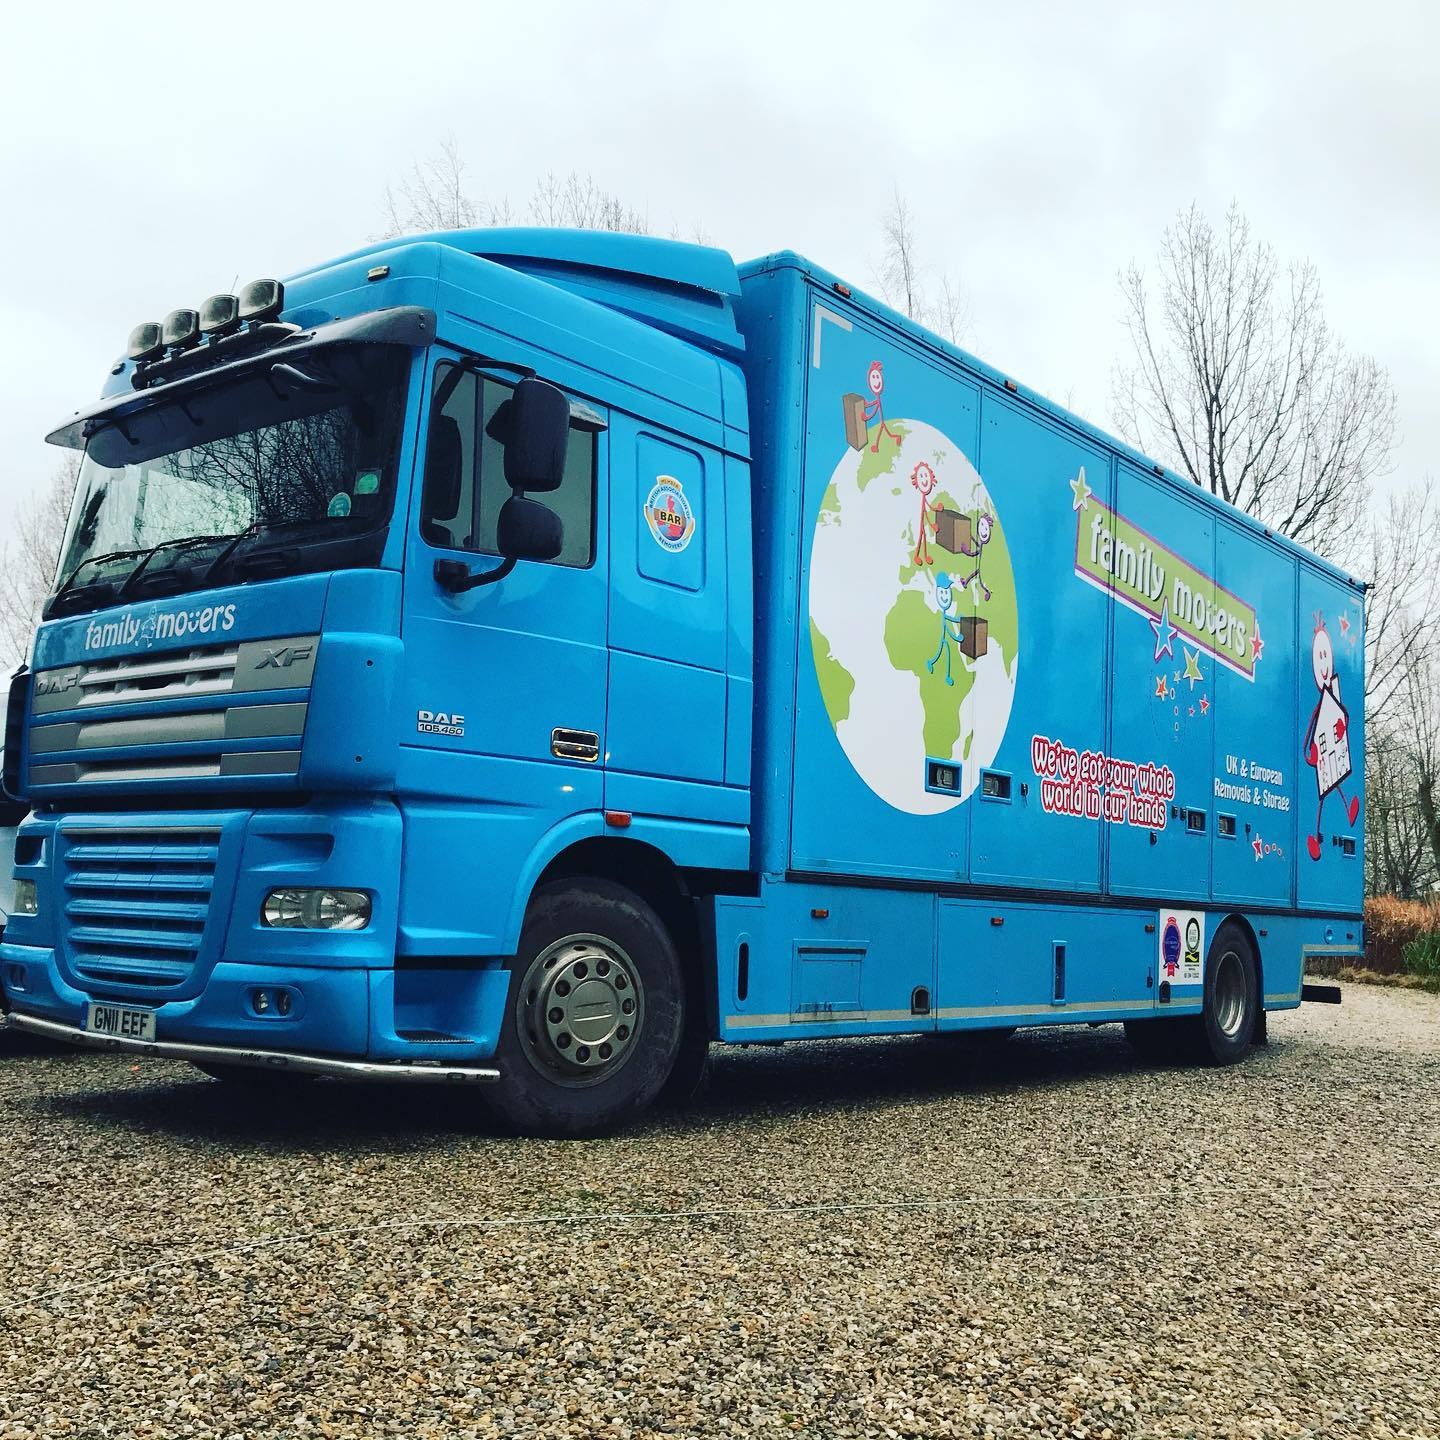 Family Movers removal lorry, ready for a home move